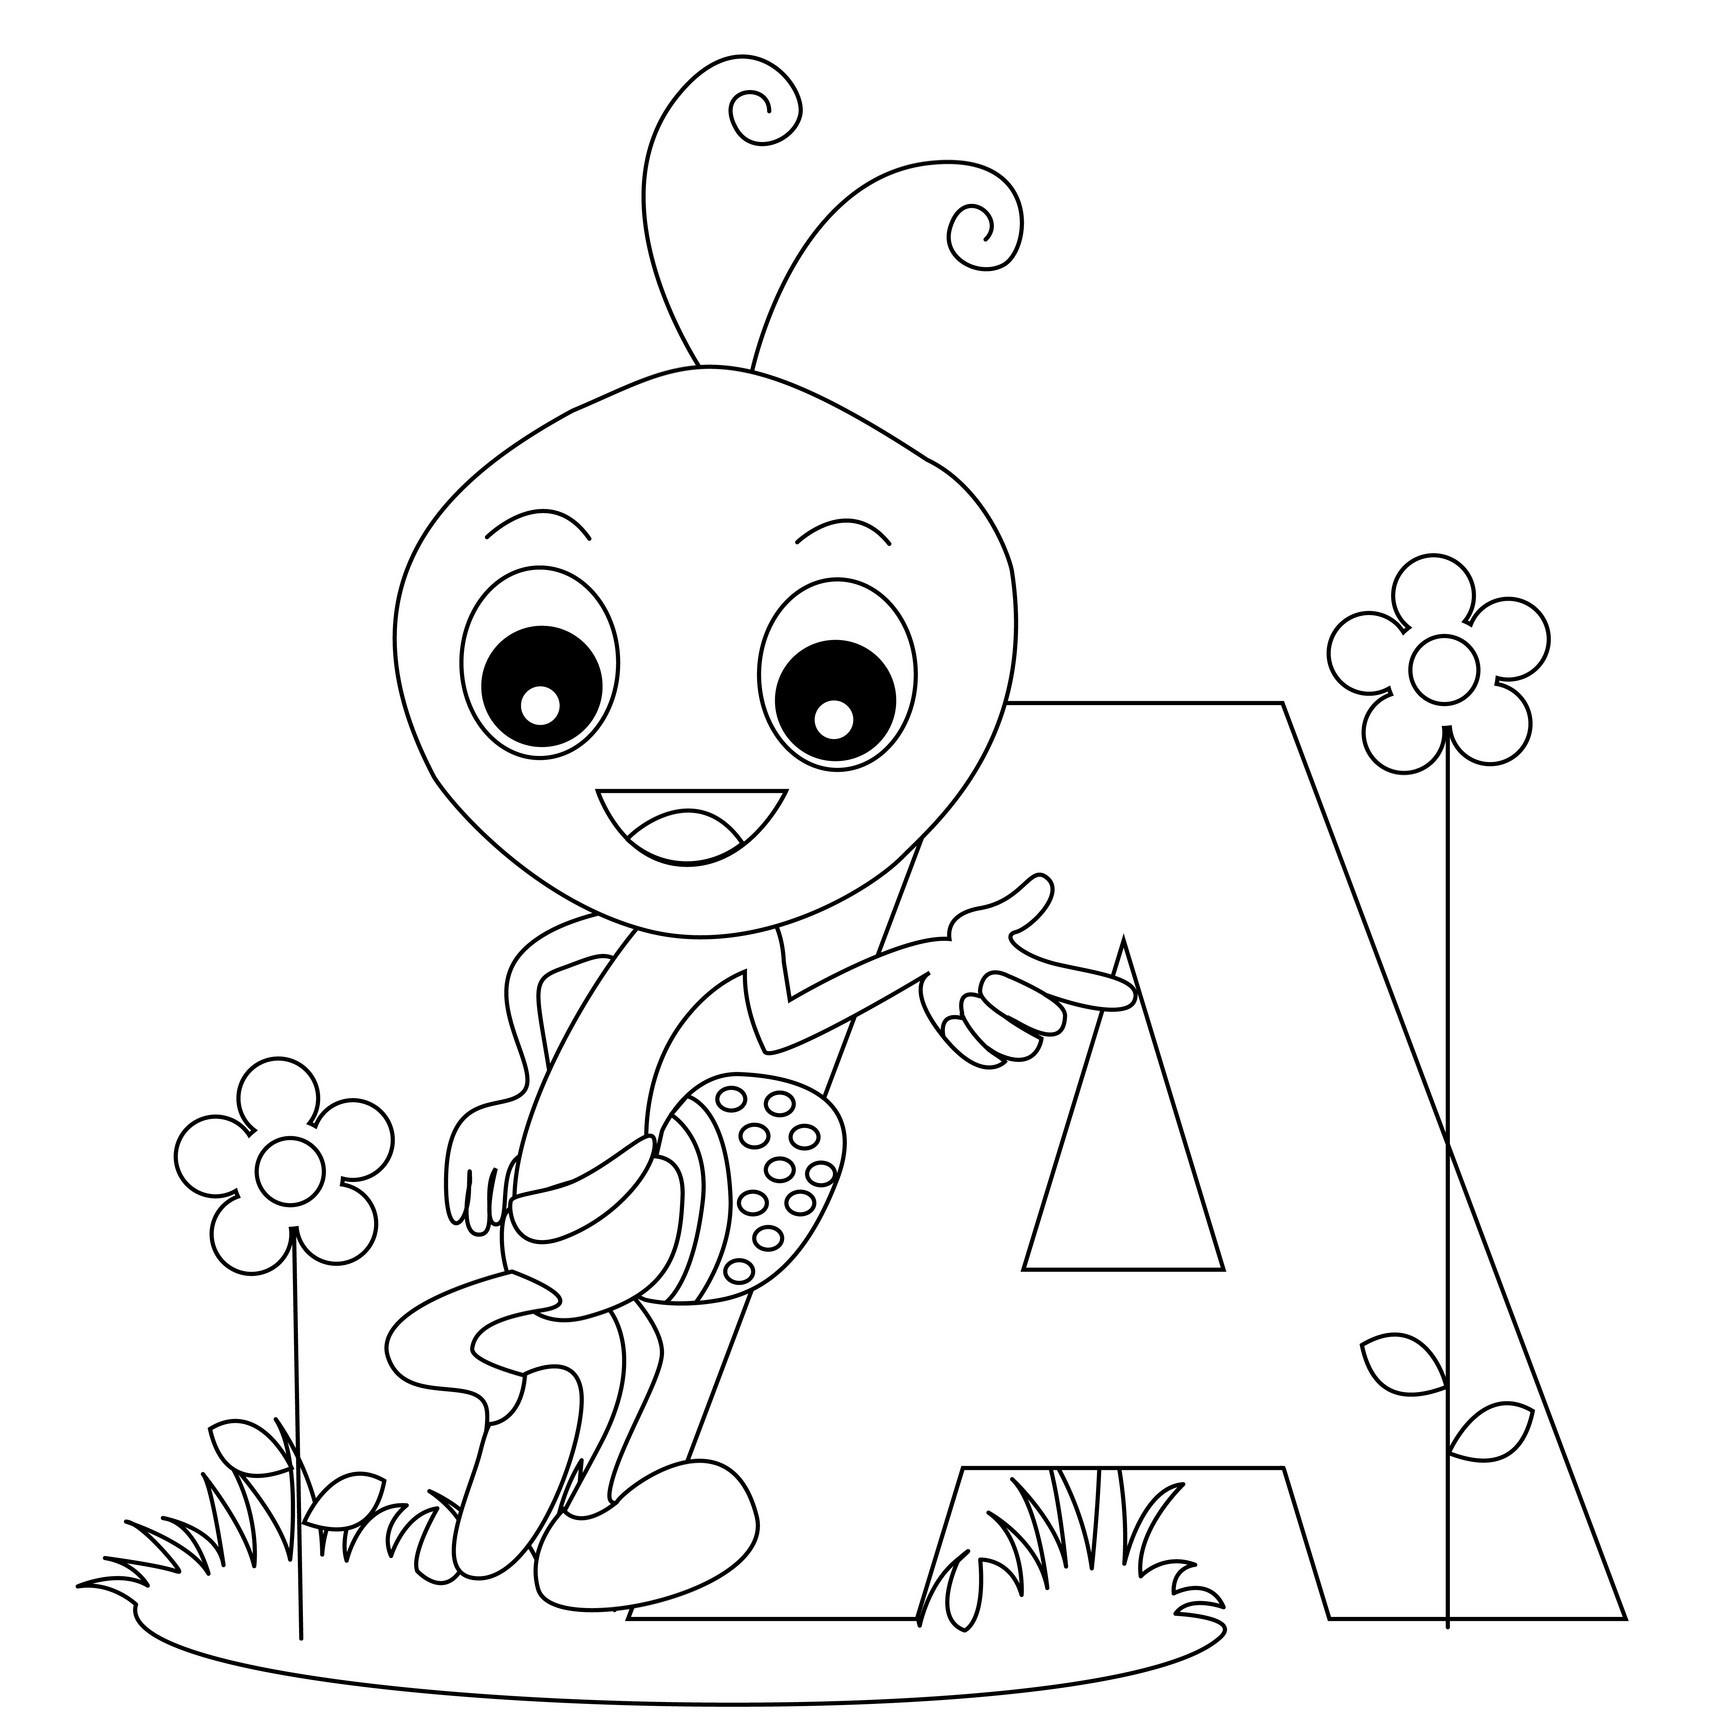 Free coloring pages alphabet letters - Alphabet Coloring Pages Letter A